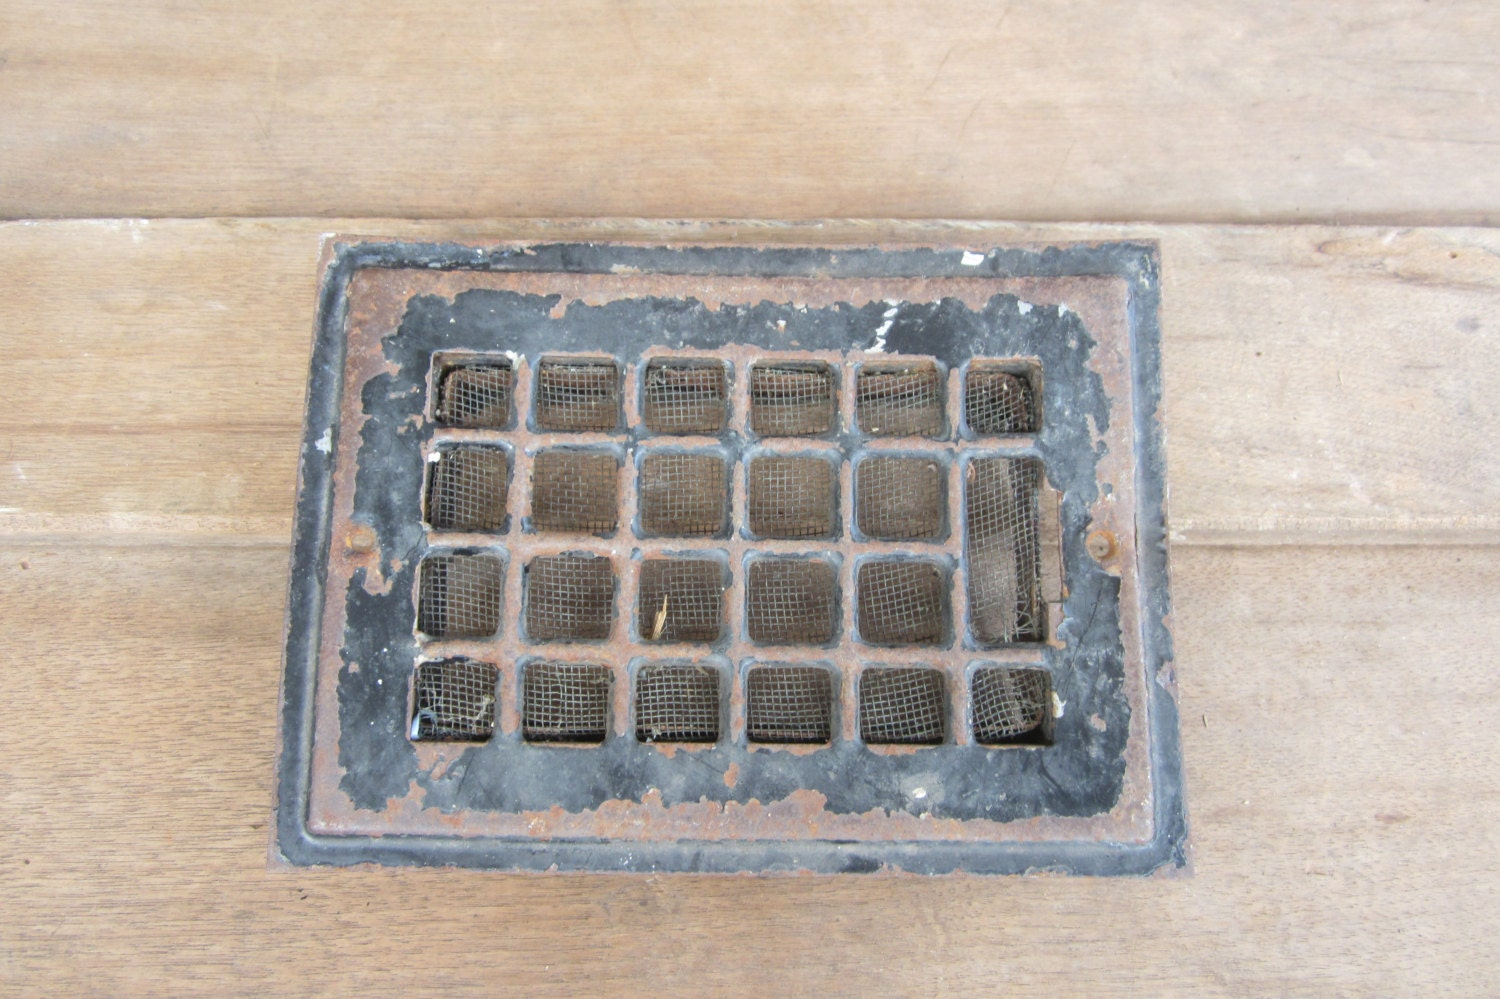 #846547 Only 1 Vintage Metal Heating Duct Cover Register Plate Ornate Best 3573 Heating Duct Covers photos with 1500x999 px on helpvideos.info - Air Conditioners, Air Coolers and more